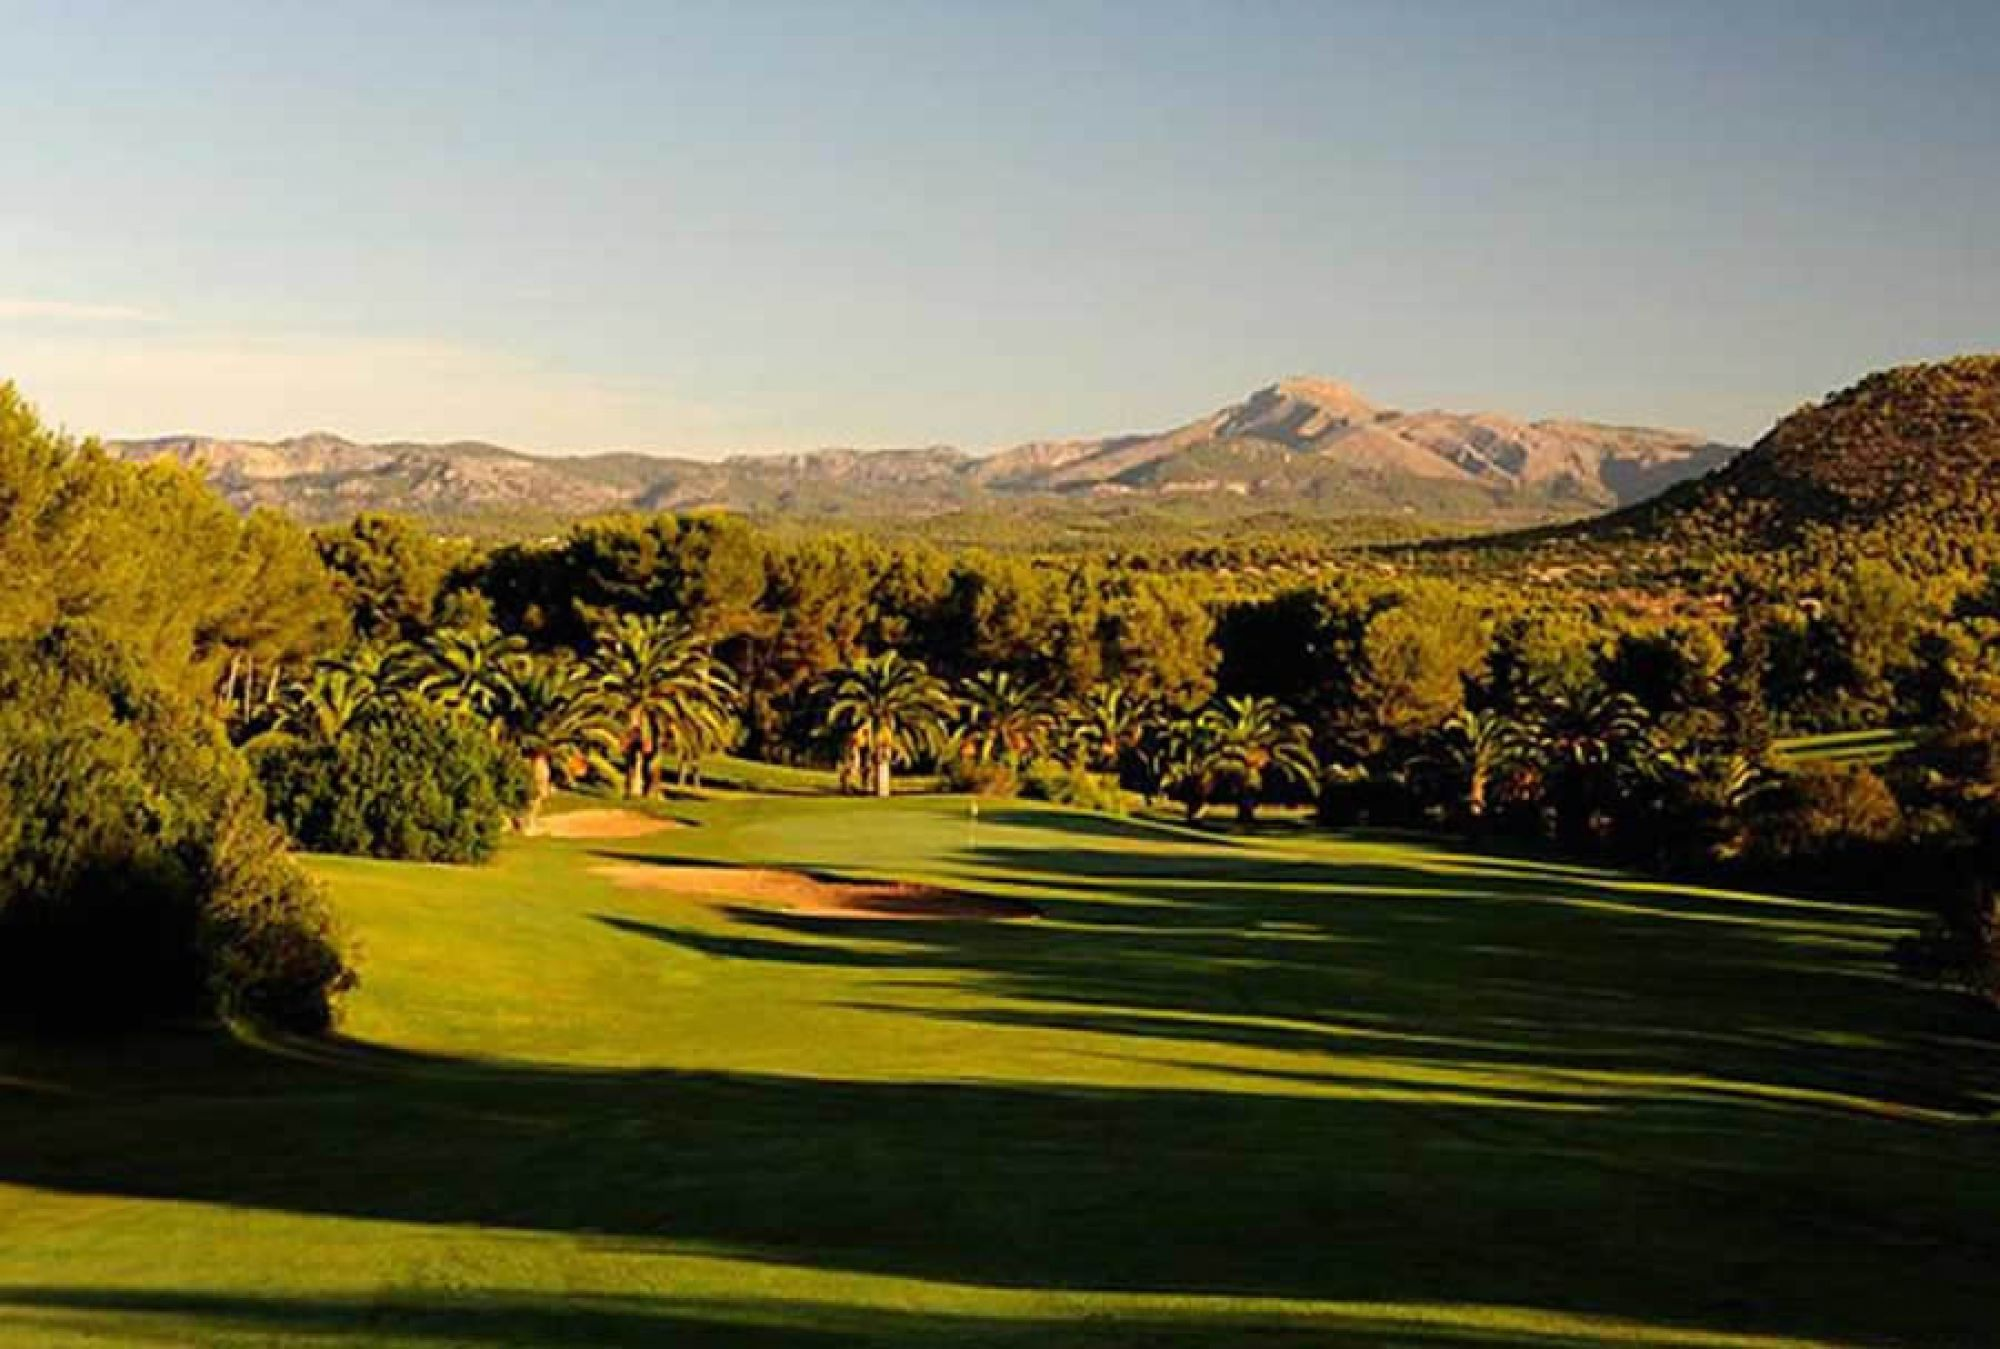 All The Poniente Golf Course's picturesque golf course in sensational Mallorca.